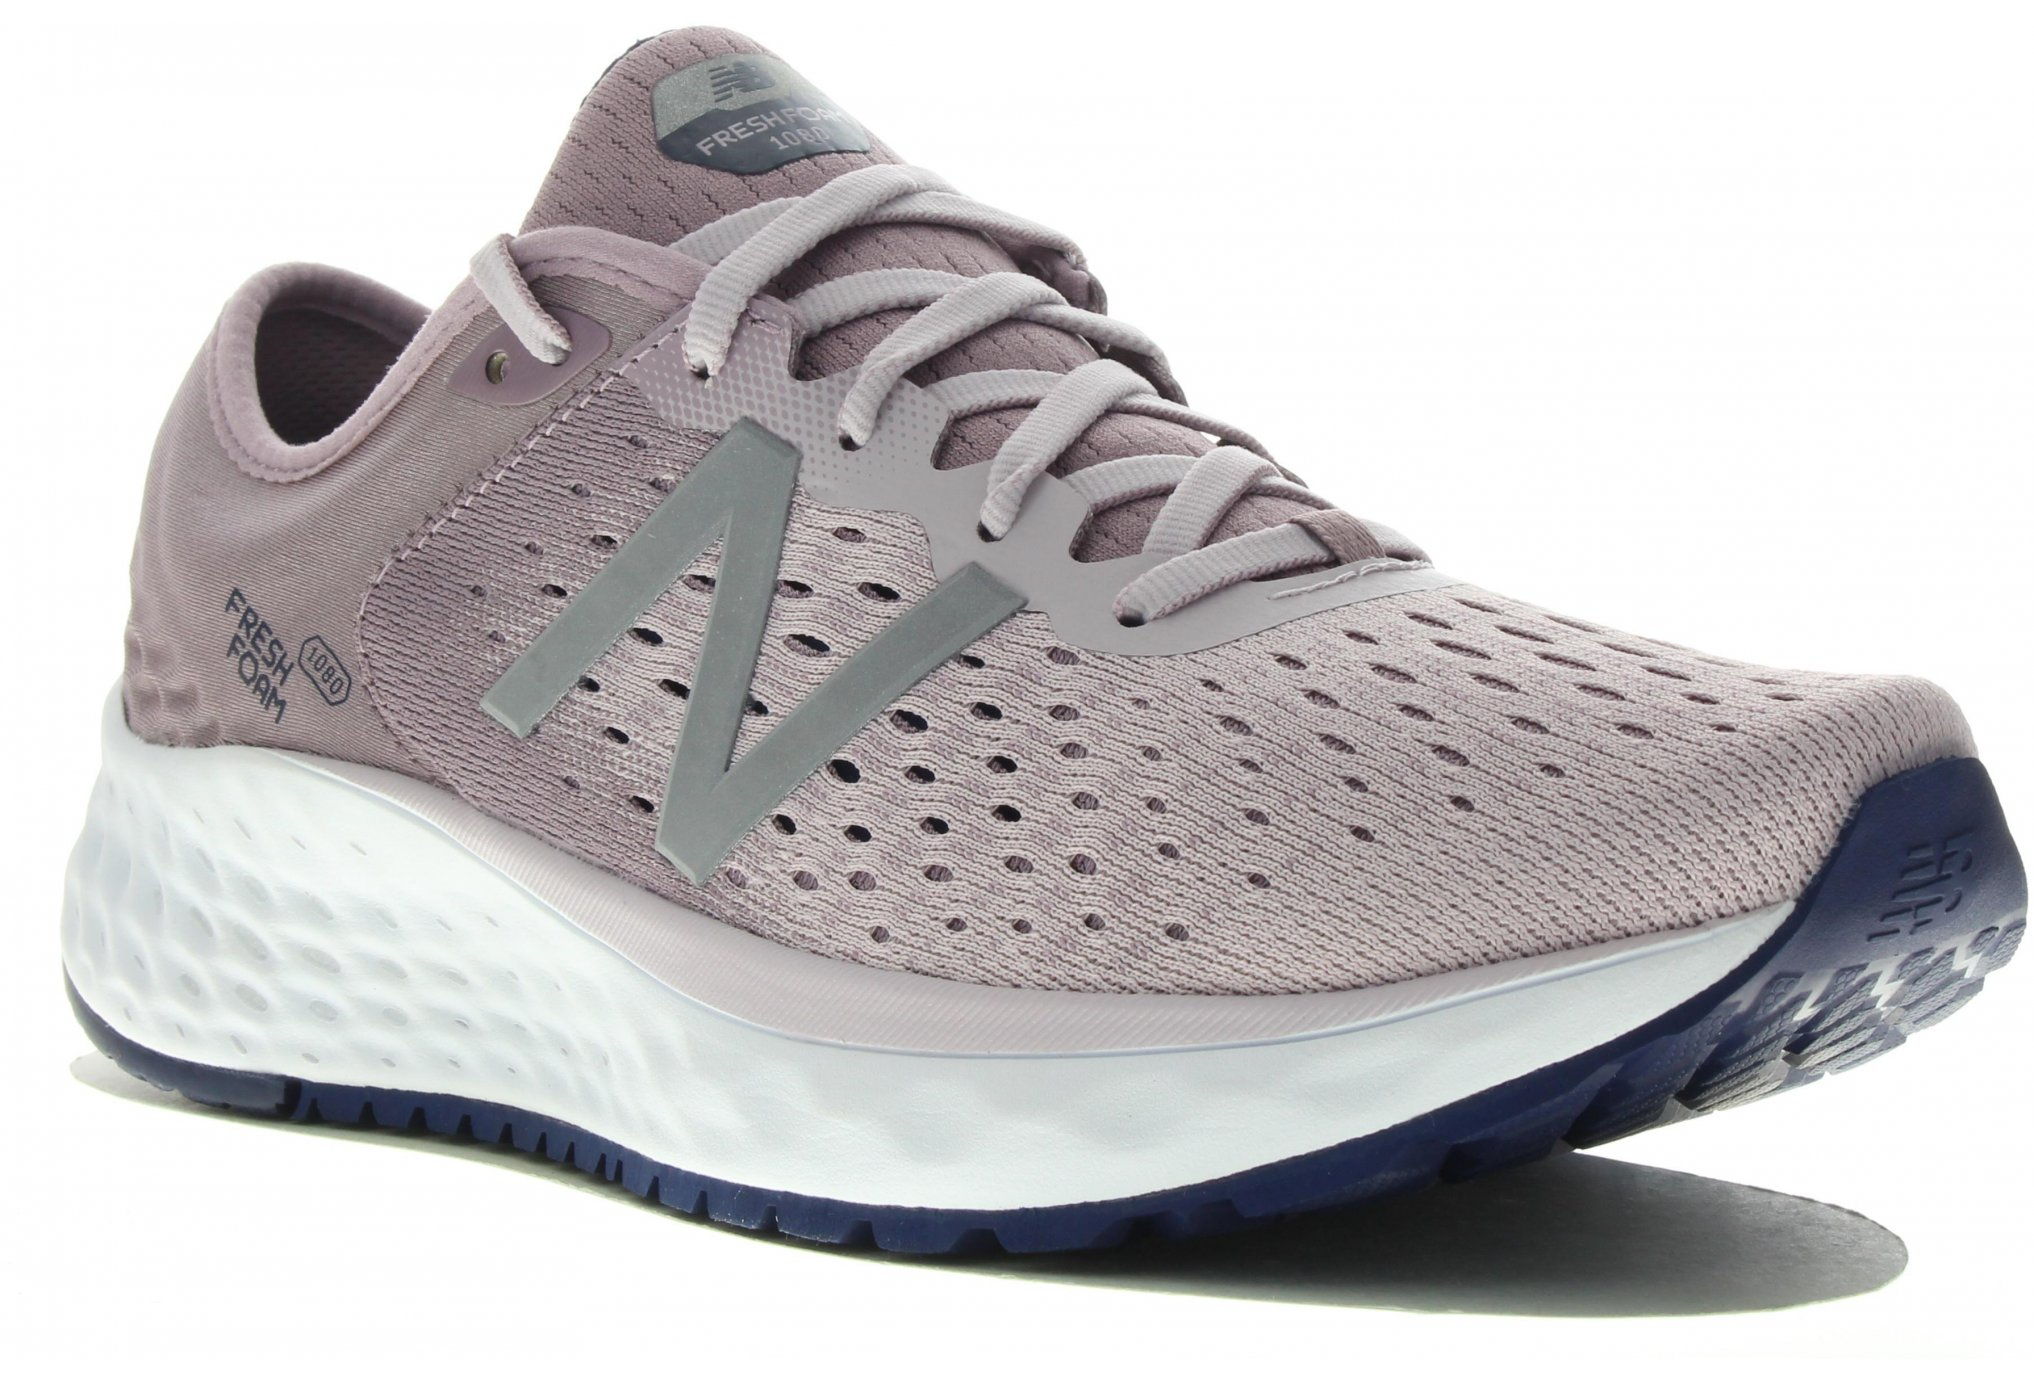 New Balance Fresh Foam W 1080 V9 - B déstockage running